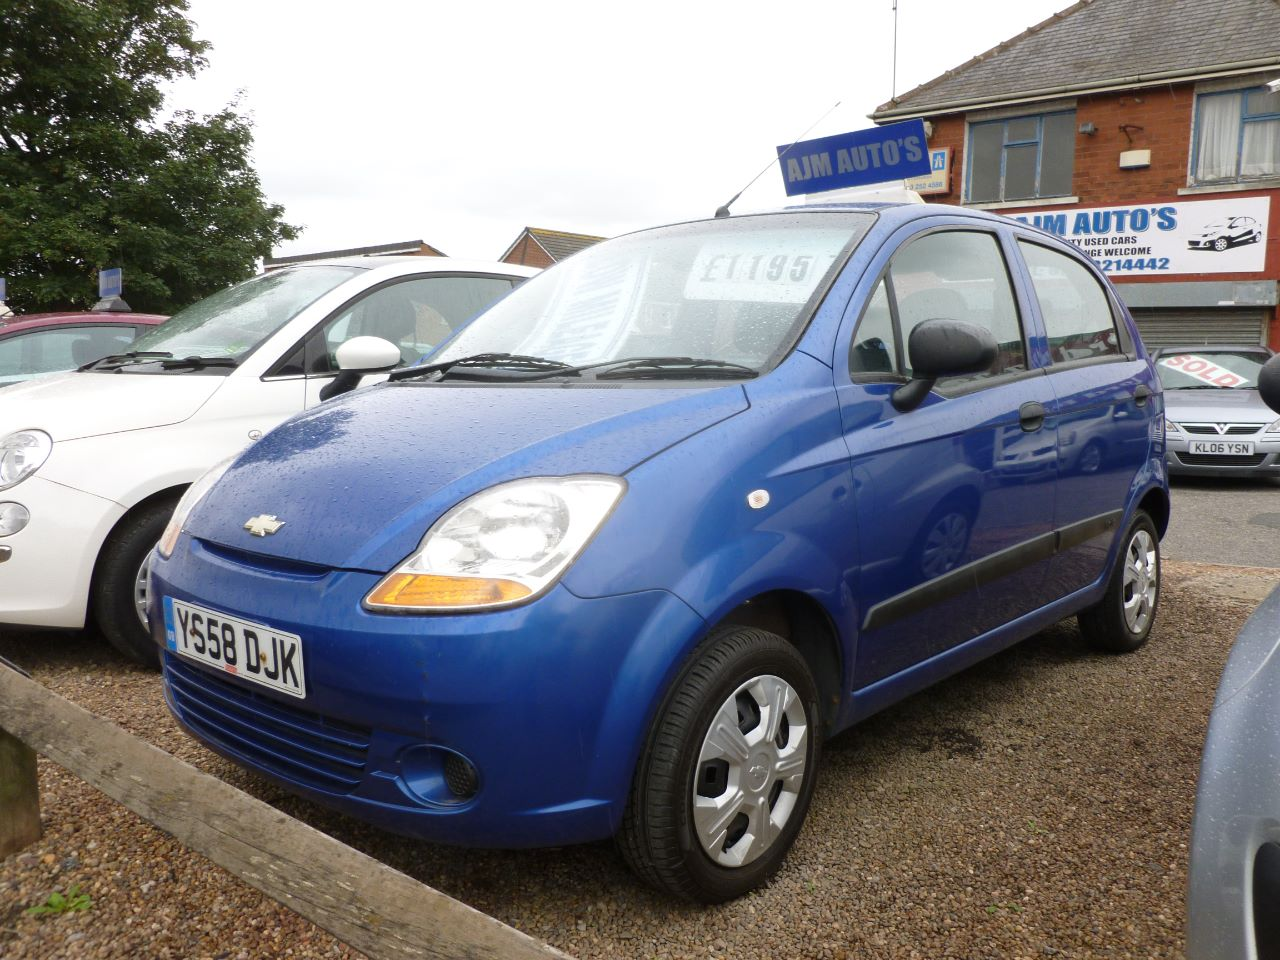 Chevrolet Matiz 0.8 S 5dr Hatchback Petrol Blue at AJM Autos Leeds Leeds